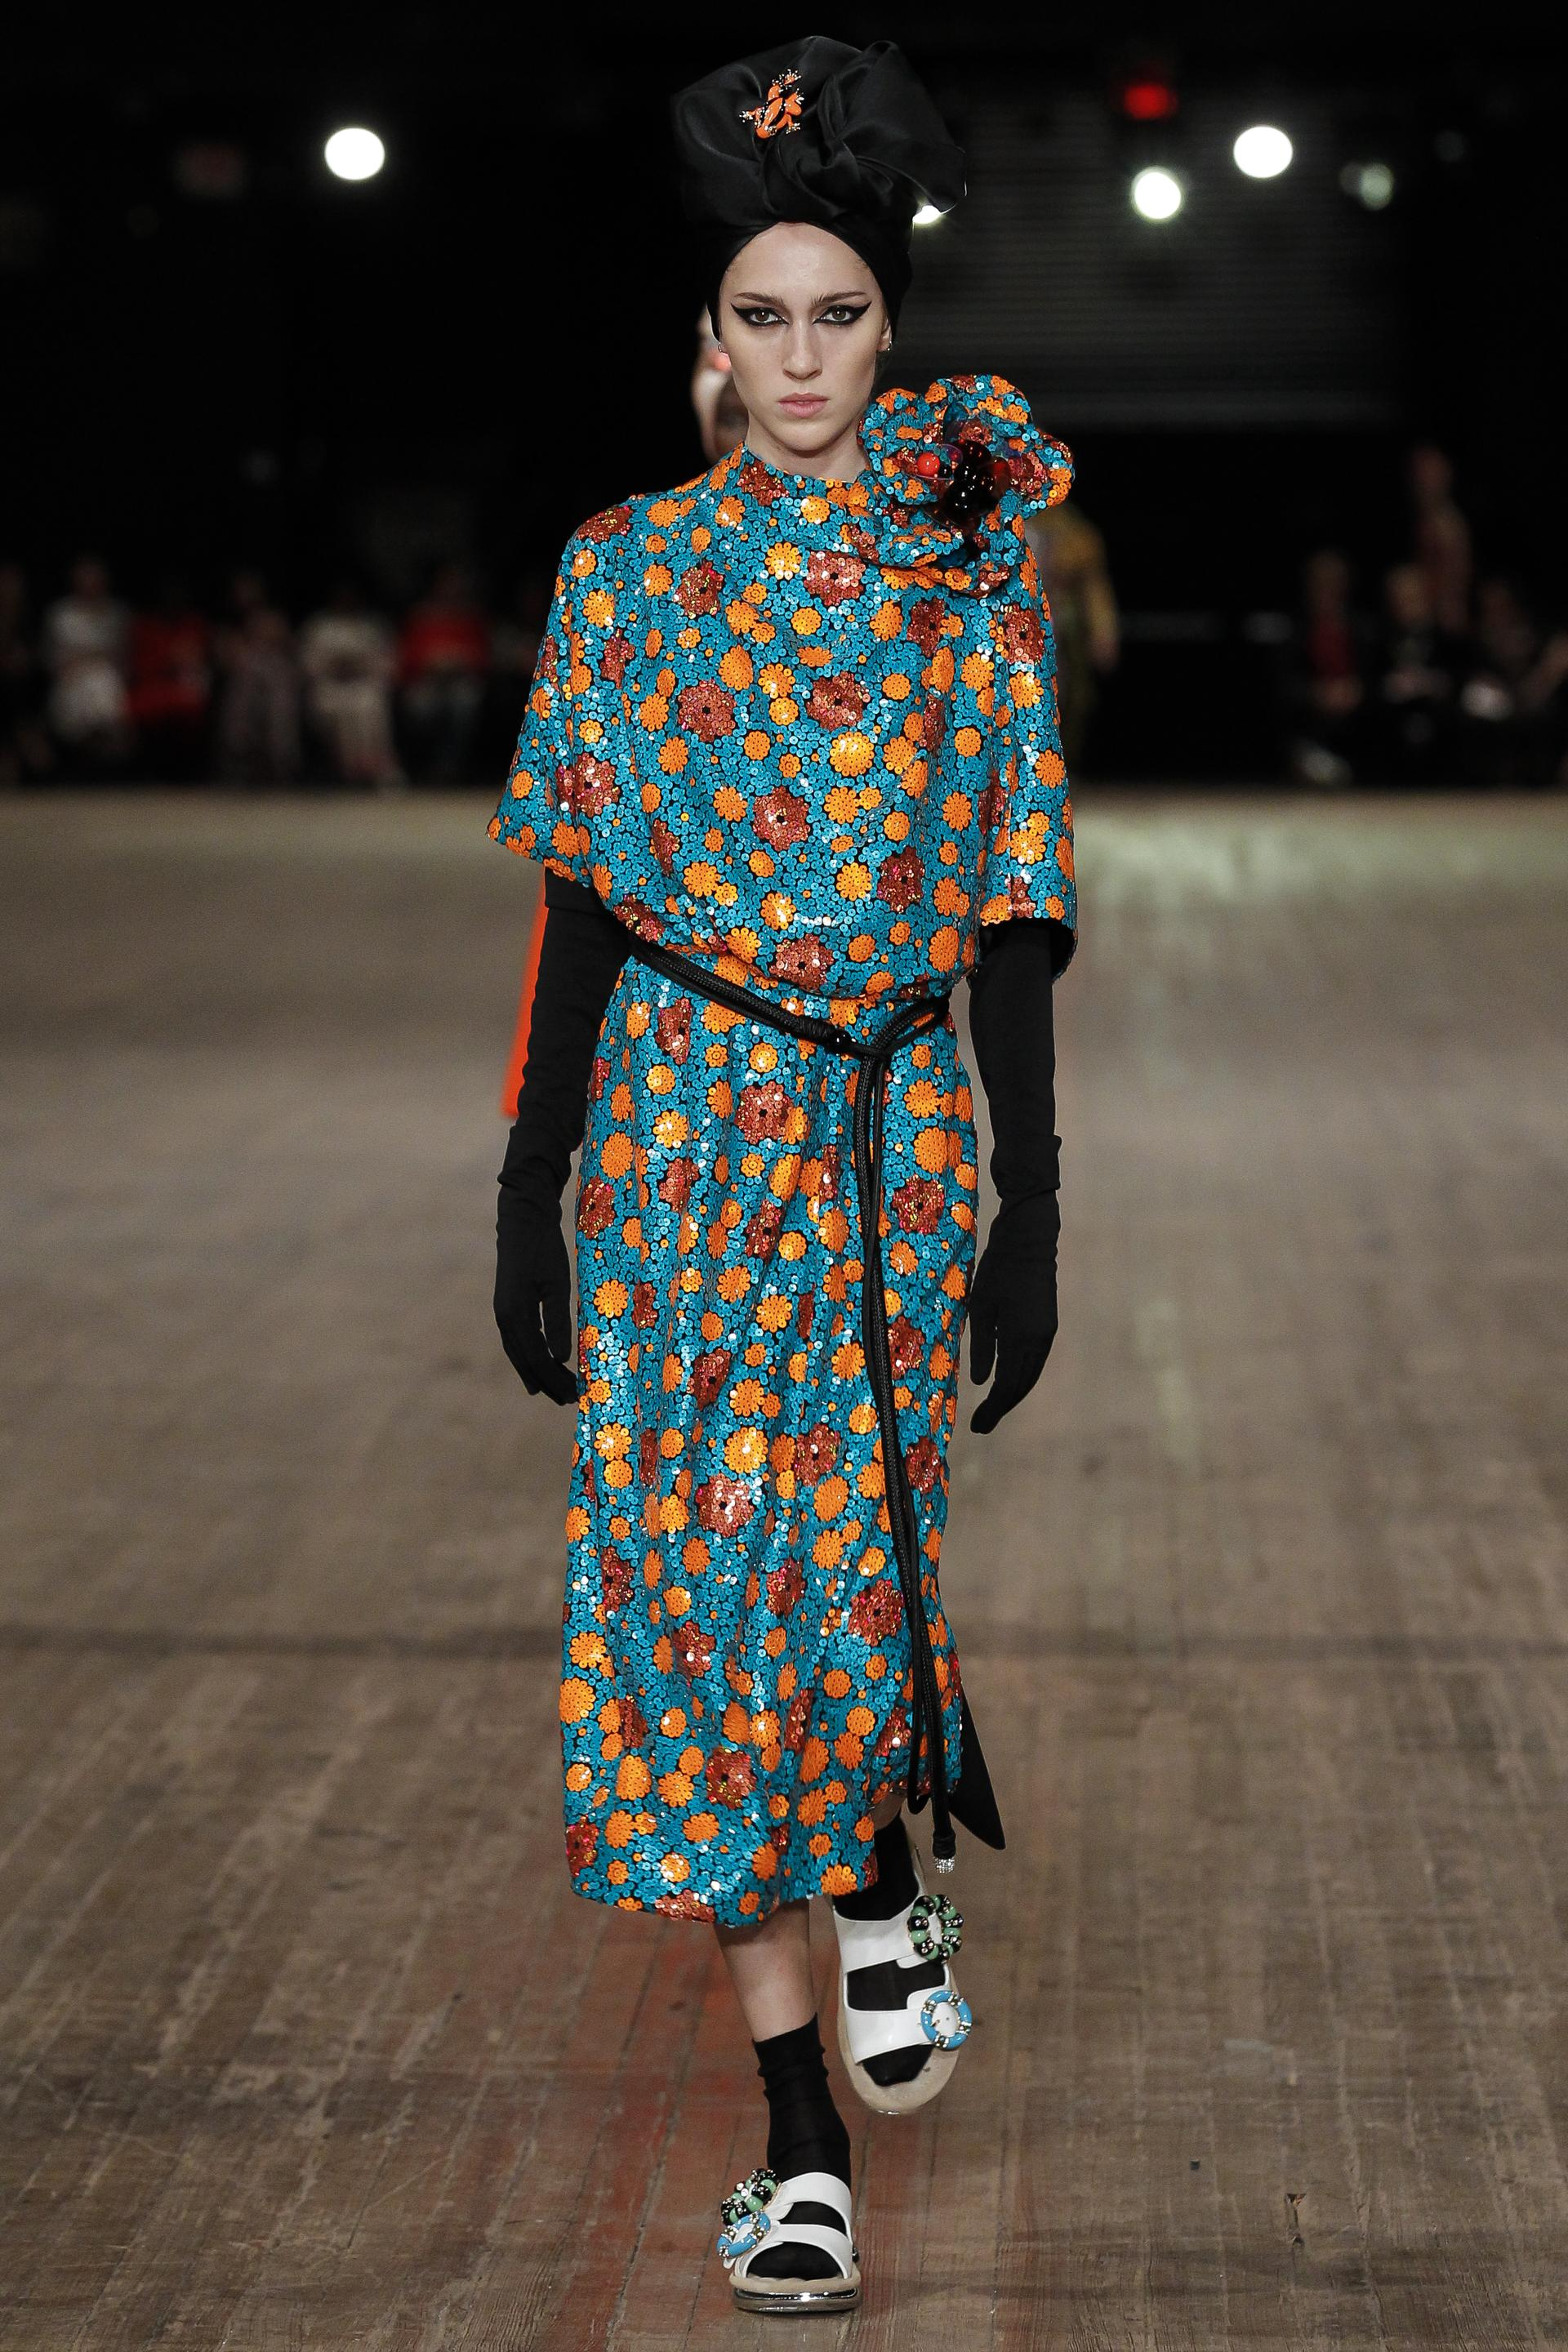 dress - Marc marc jacobs spring runway video